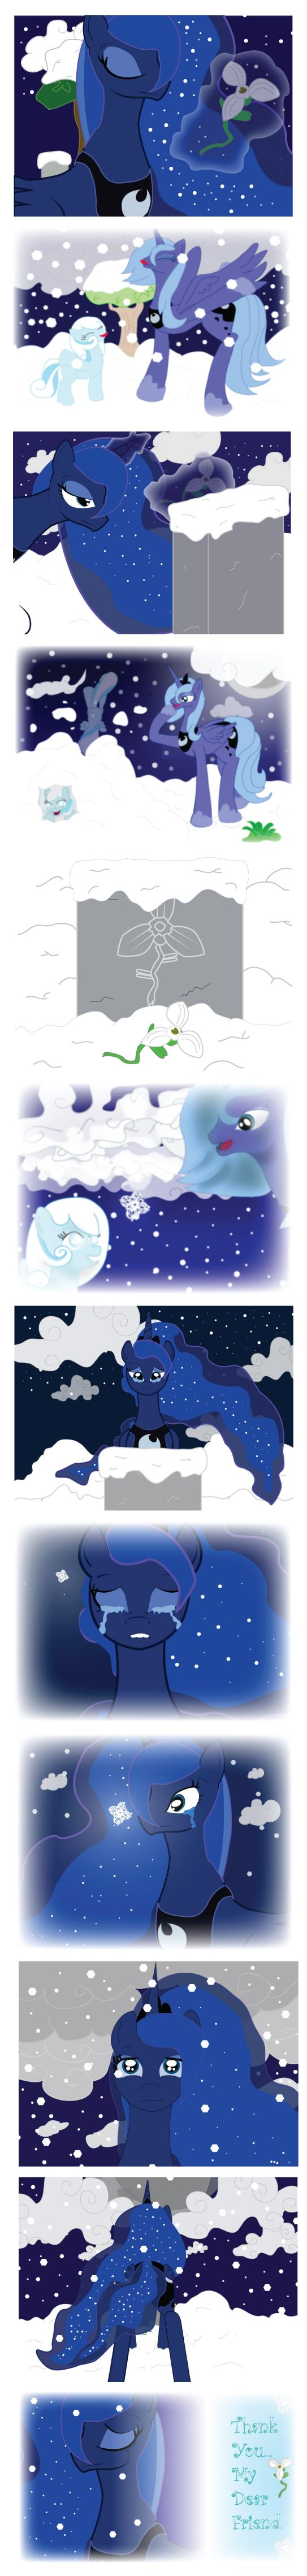 Aww || i may or may not have shed a tear || my little pony mlp